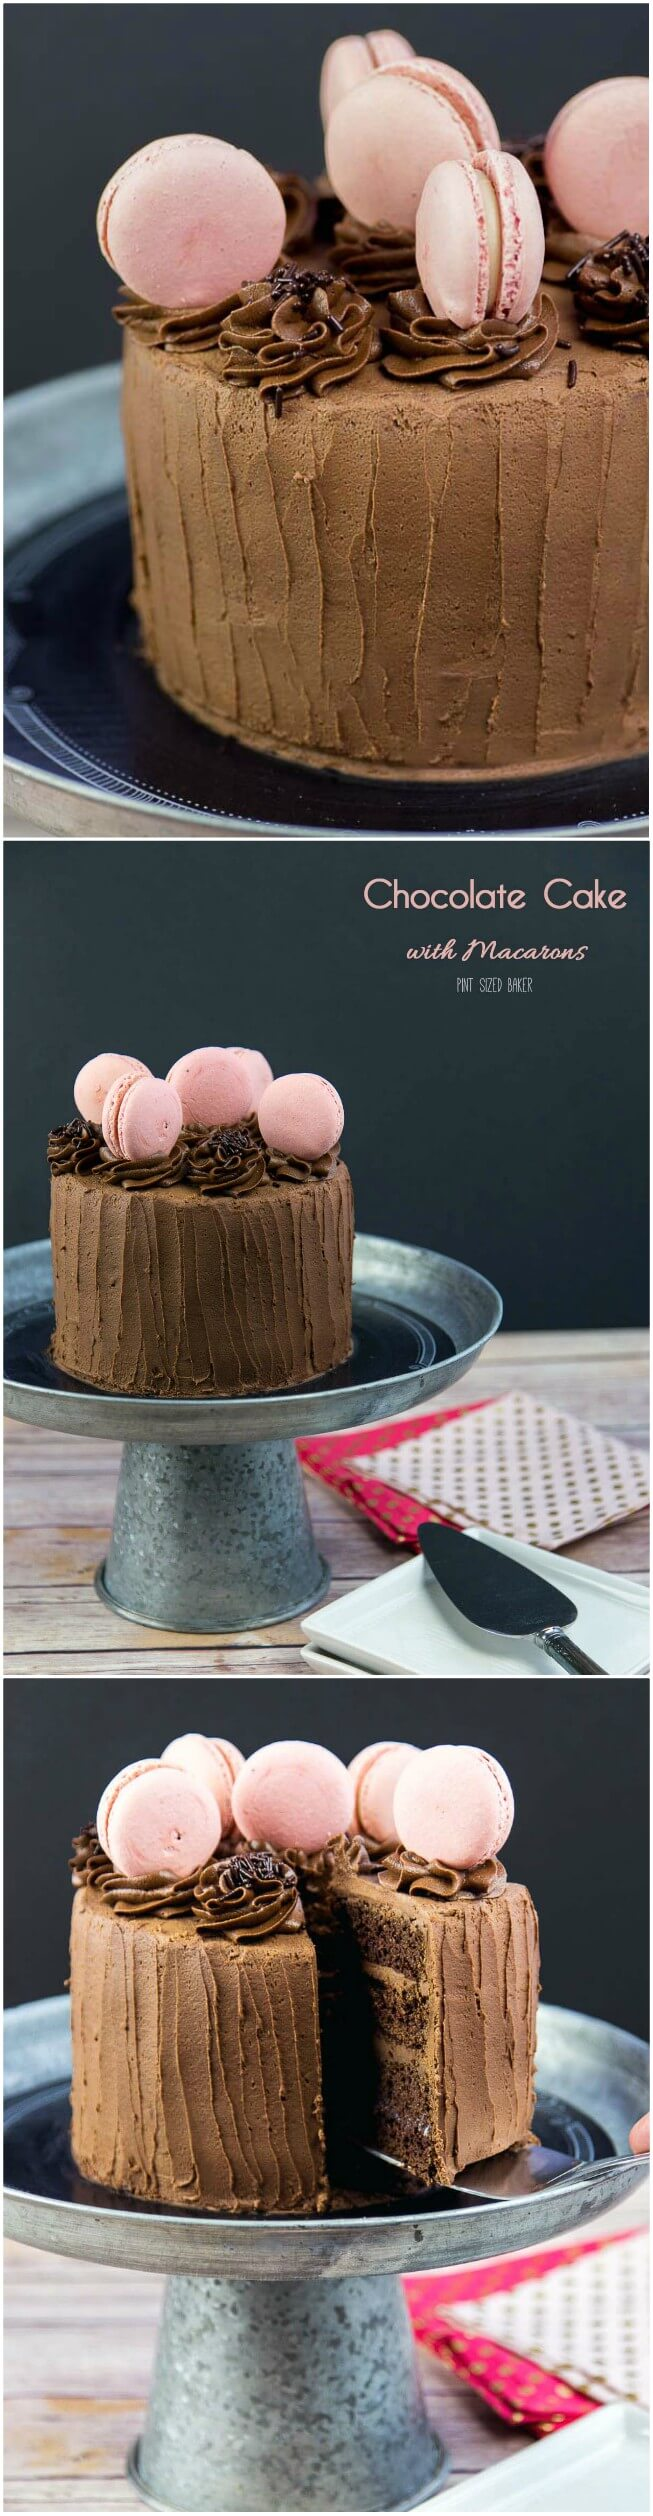 Bake a beautiful Chocolate Cake with Macarons for someone special. The cake and frosting is homemade, but the macarons are store bought.